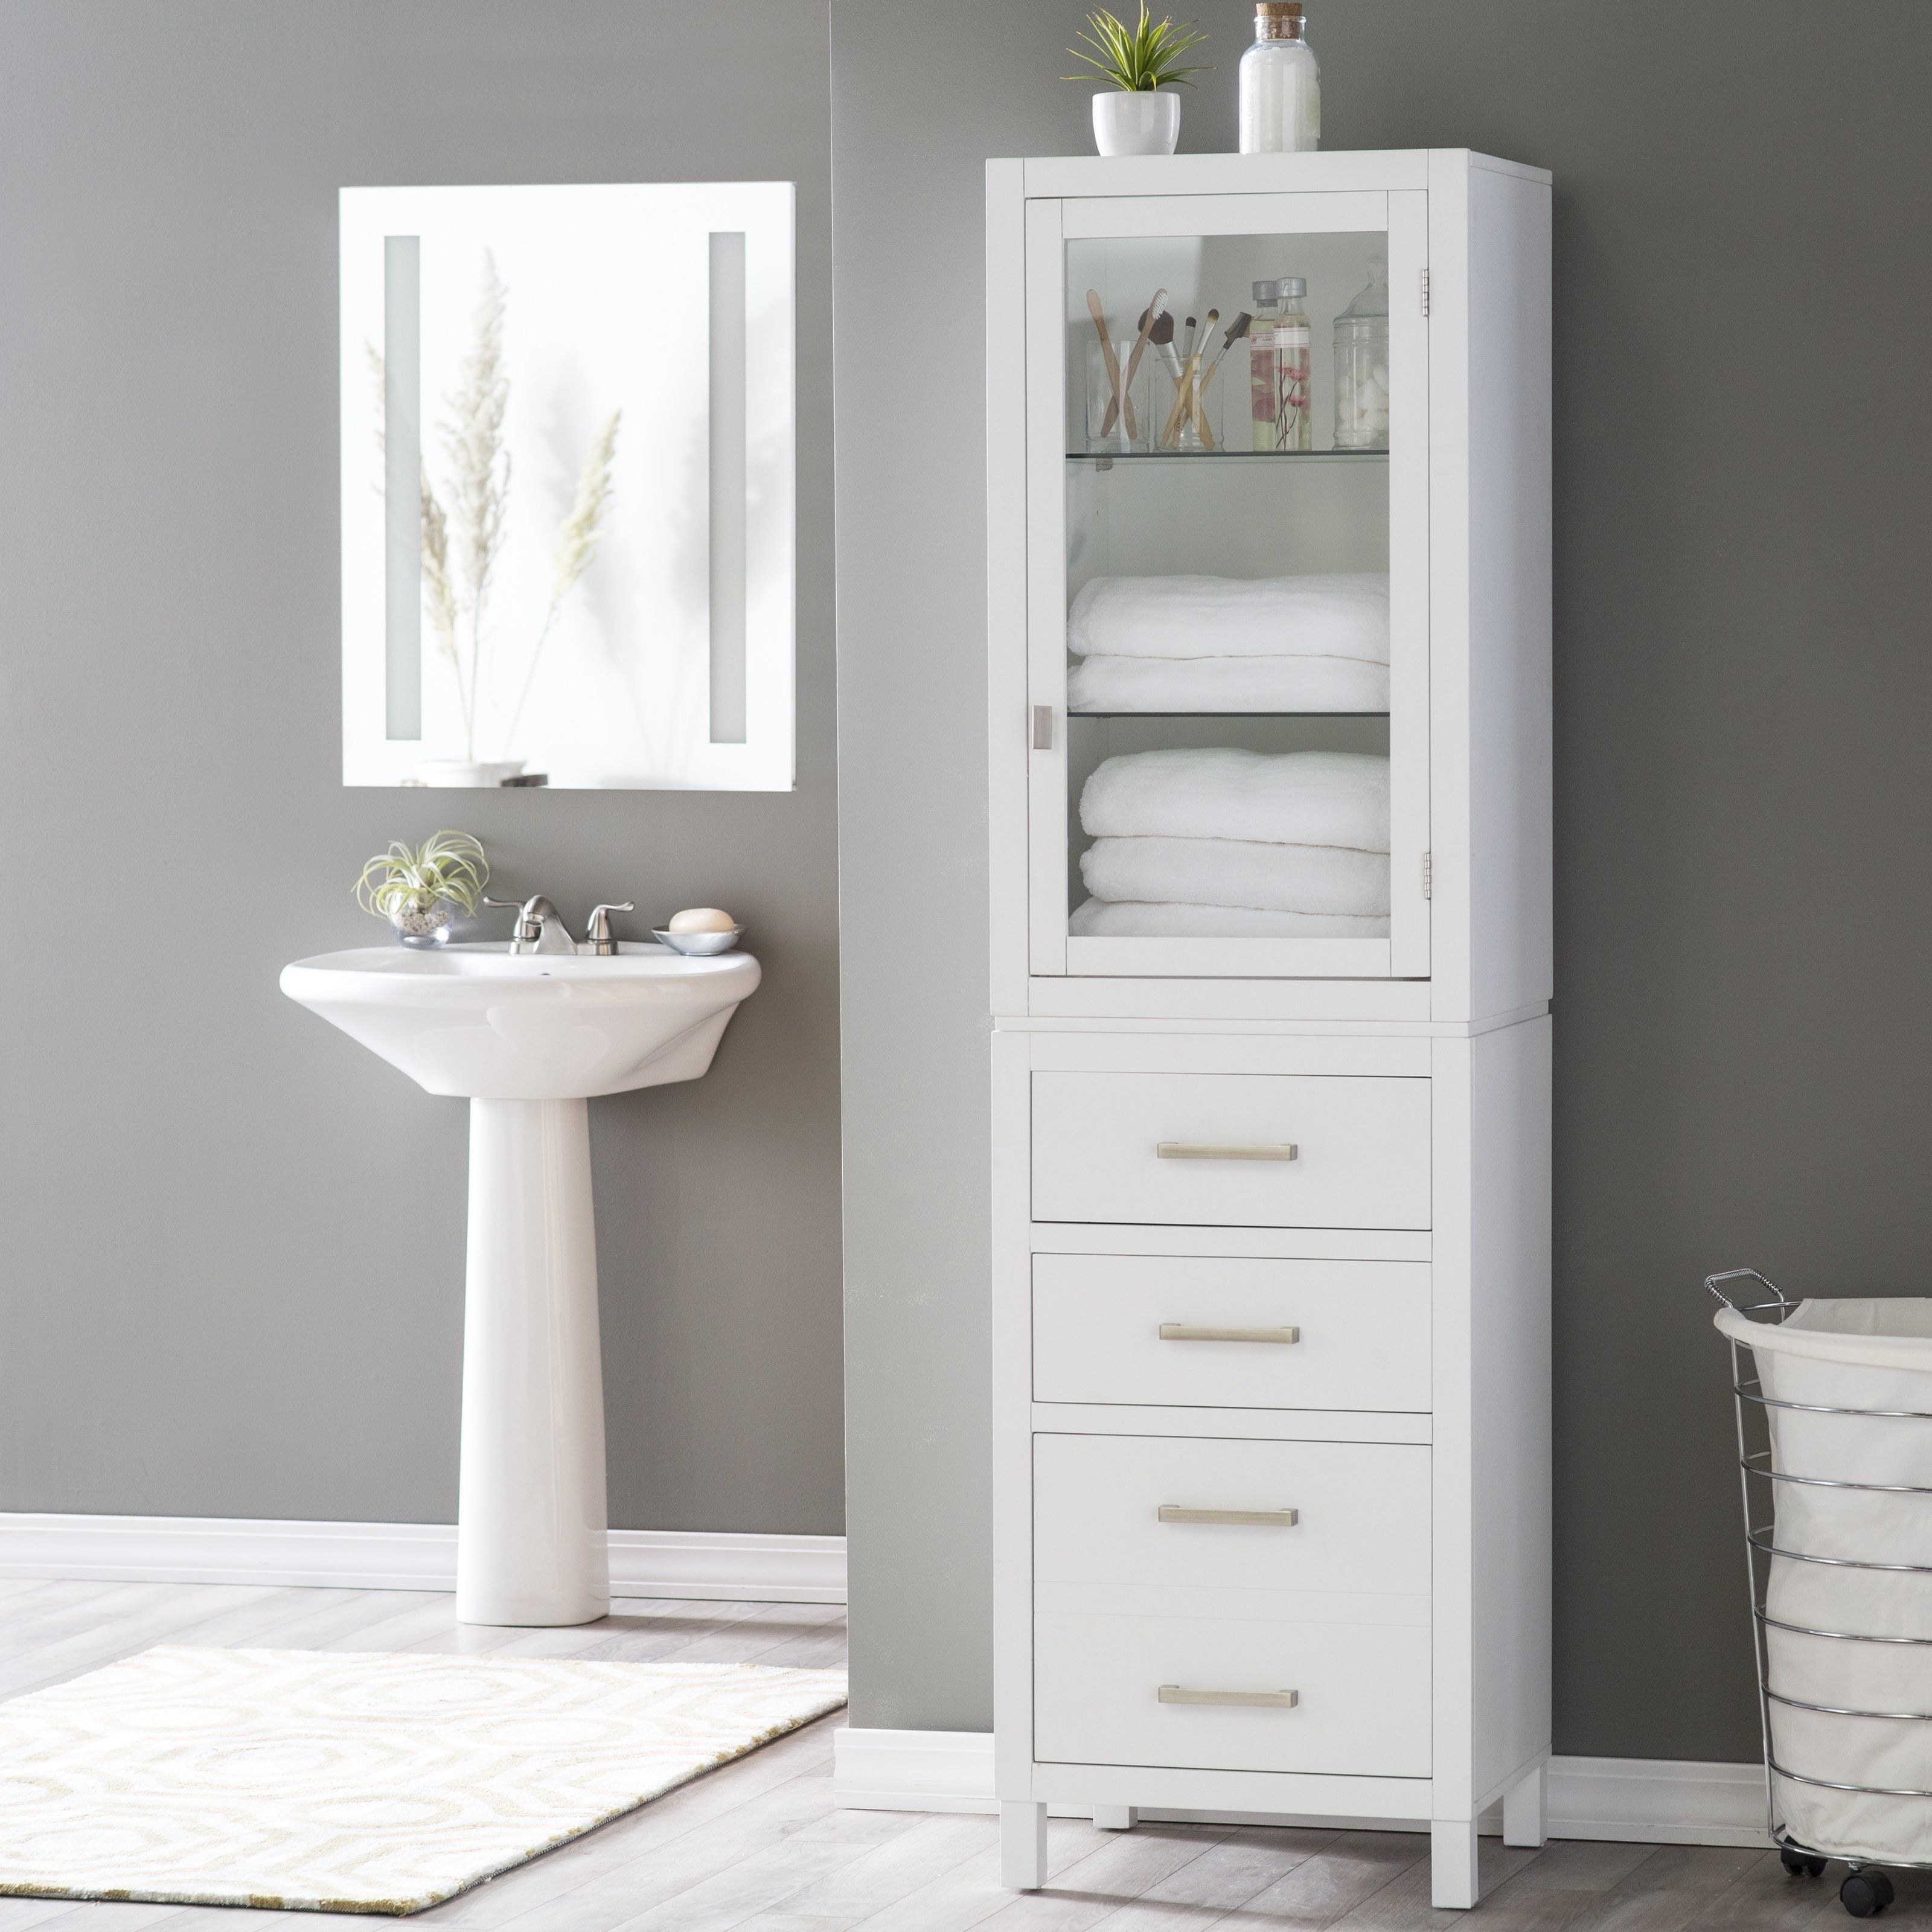 free standing linen cabinets for bathroom image result for modern freestanding linen closet SBOVJQP